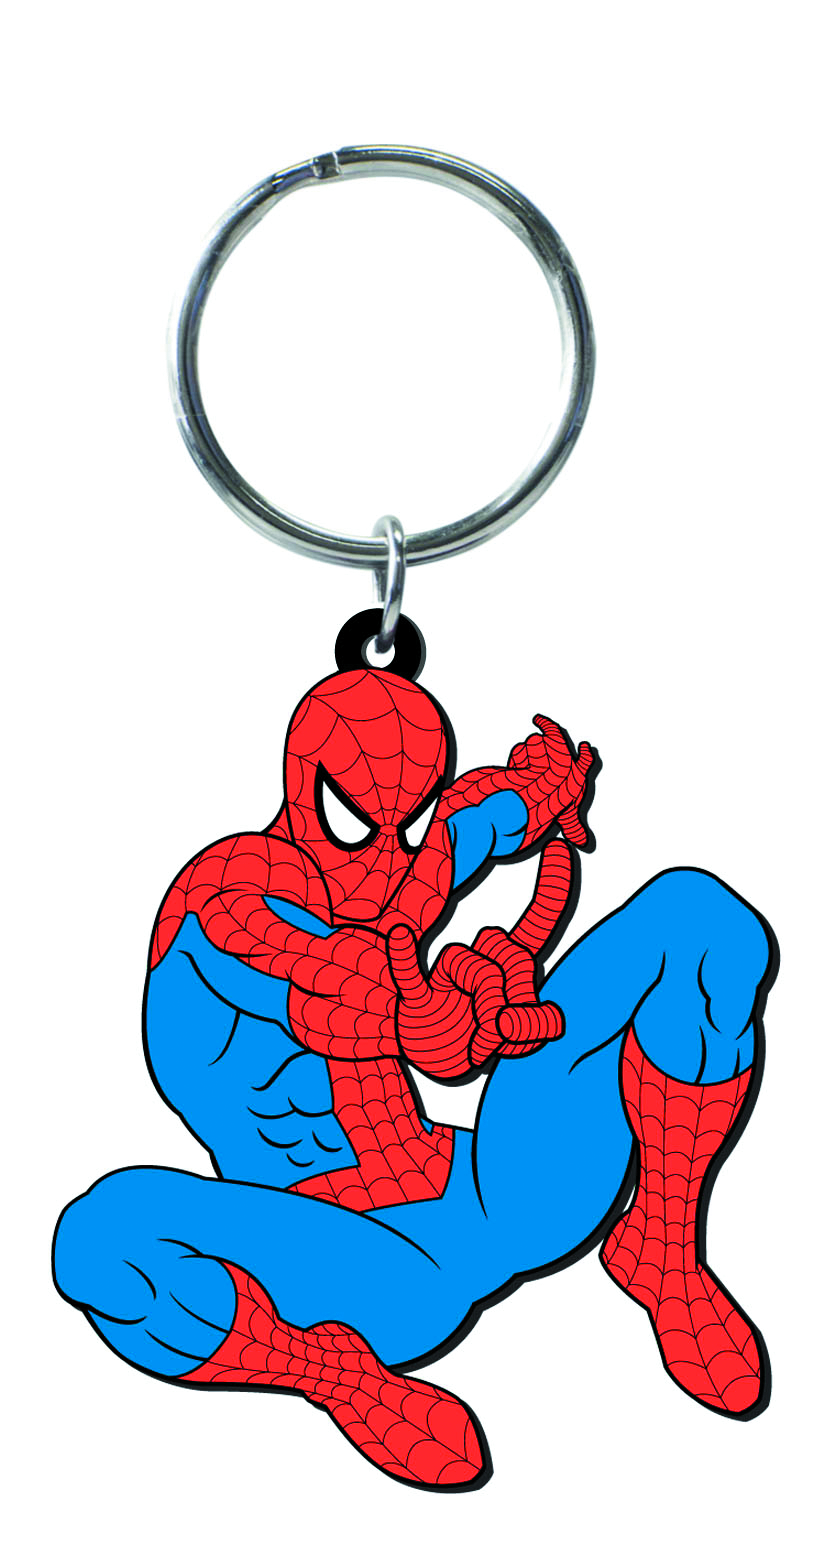 SPIDER-MAN CHARACTER SOFT TOUCH PVC KEYRING